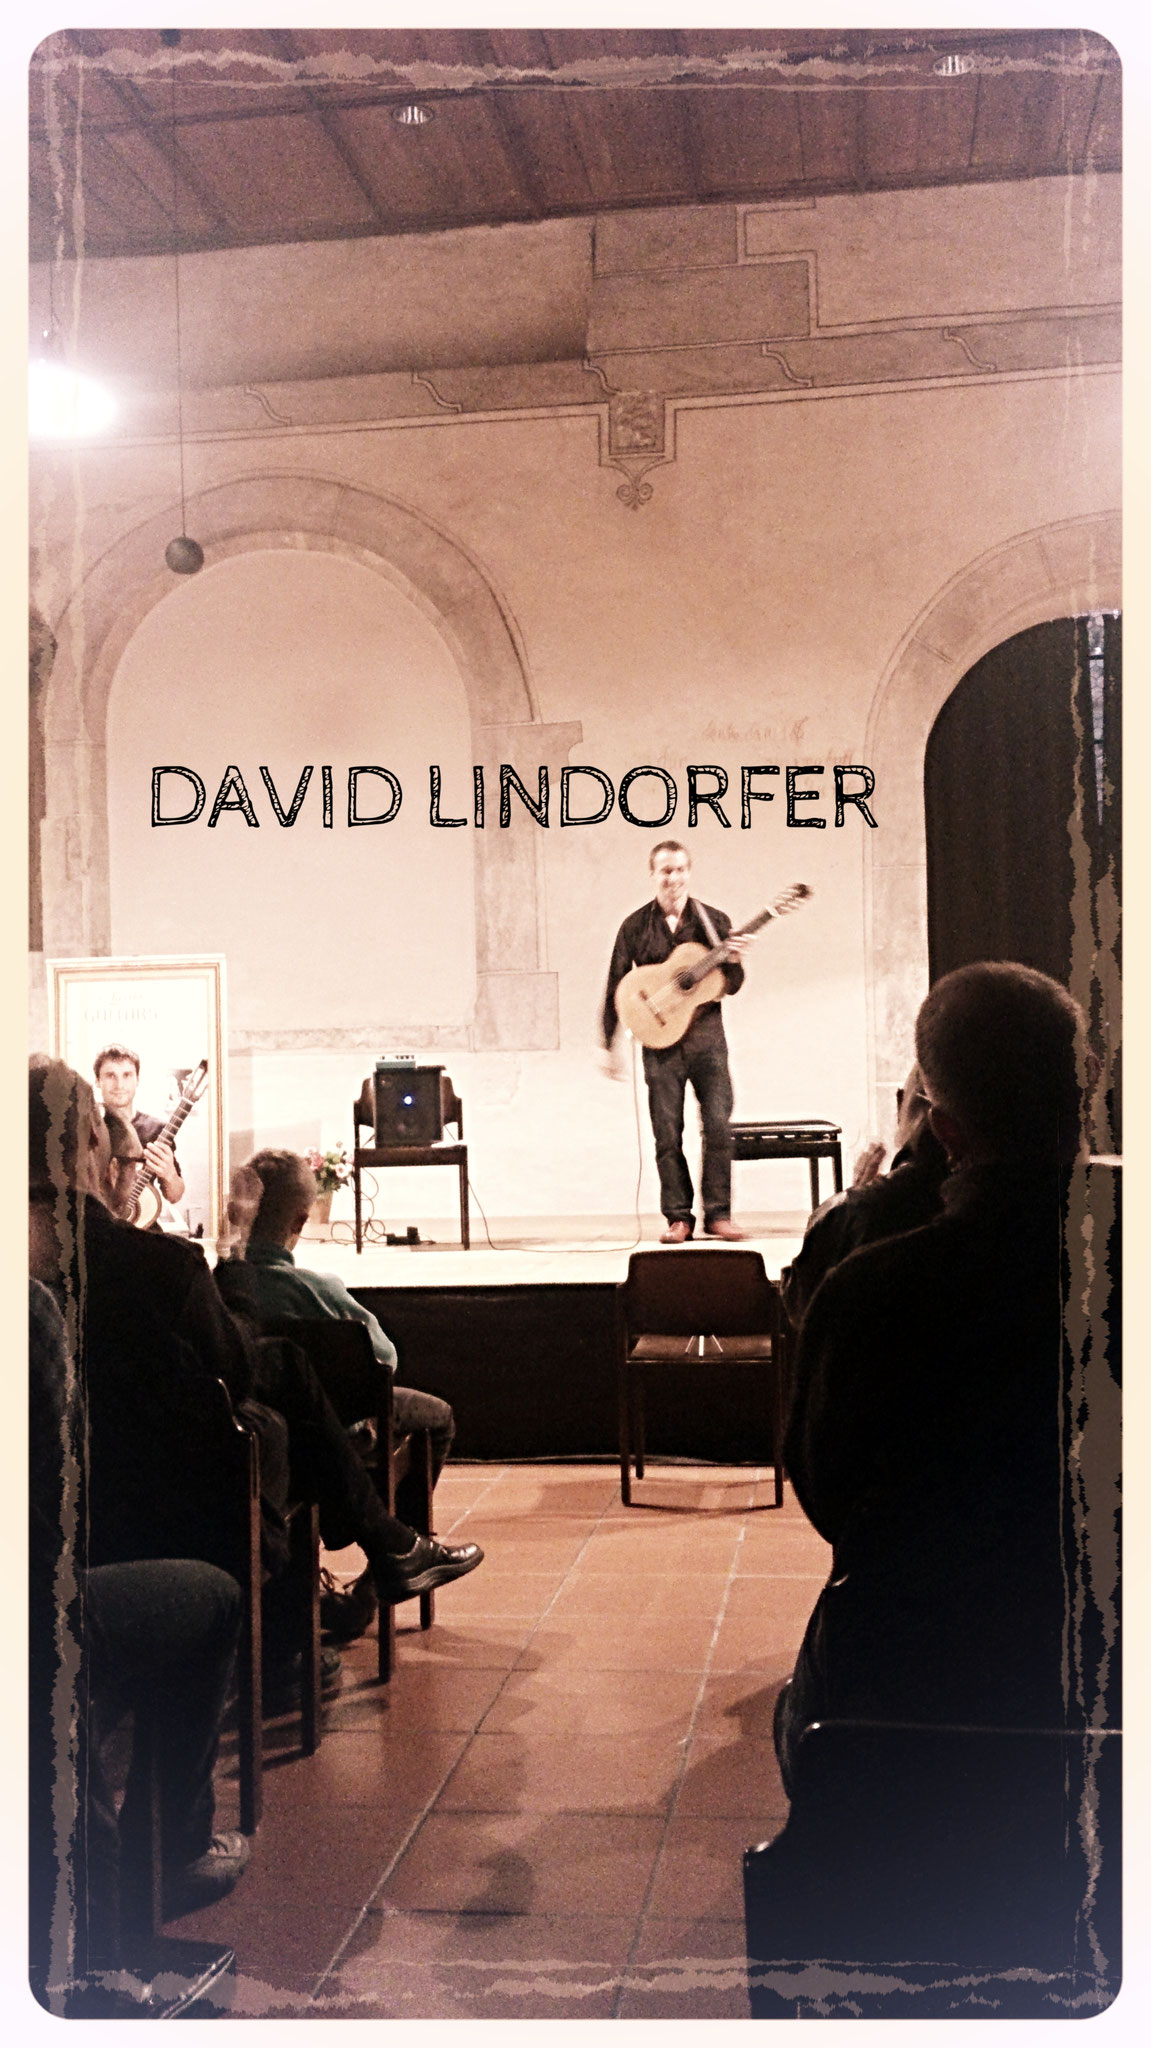 http://david-lindorfer.at/